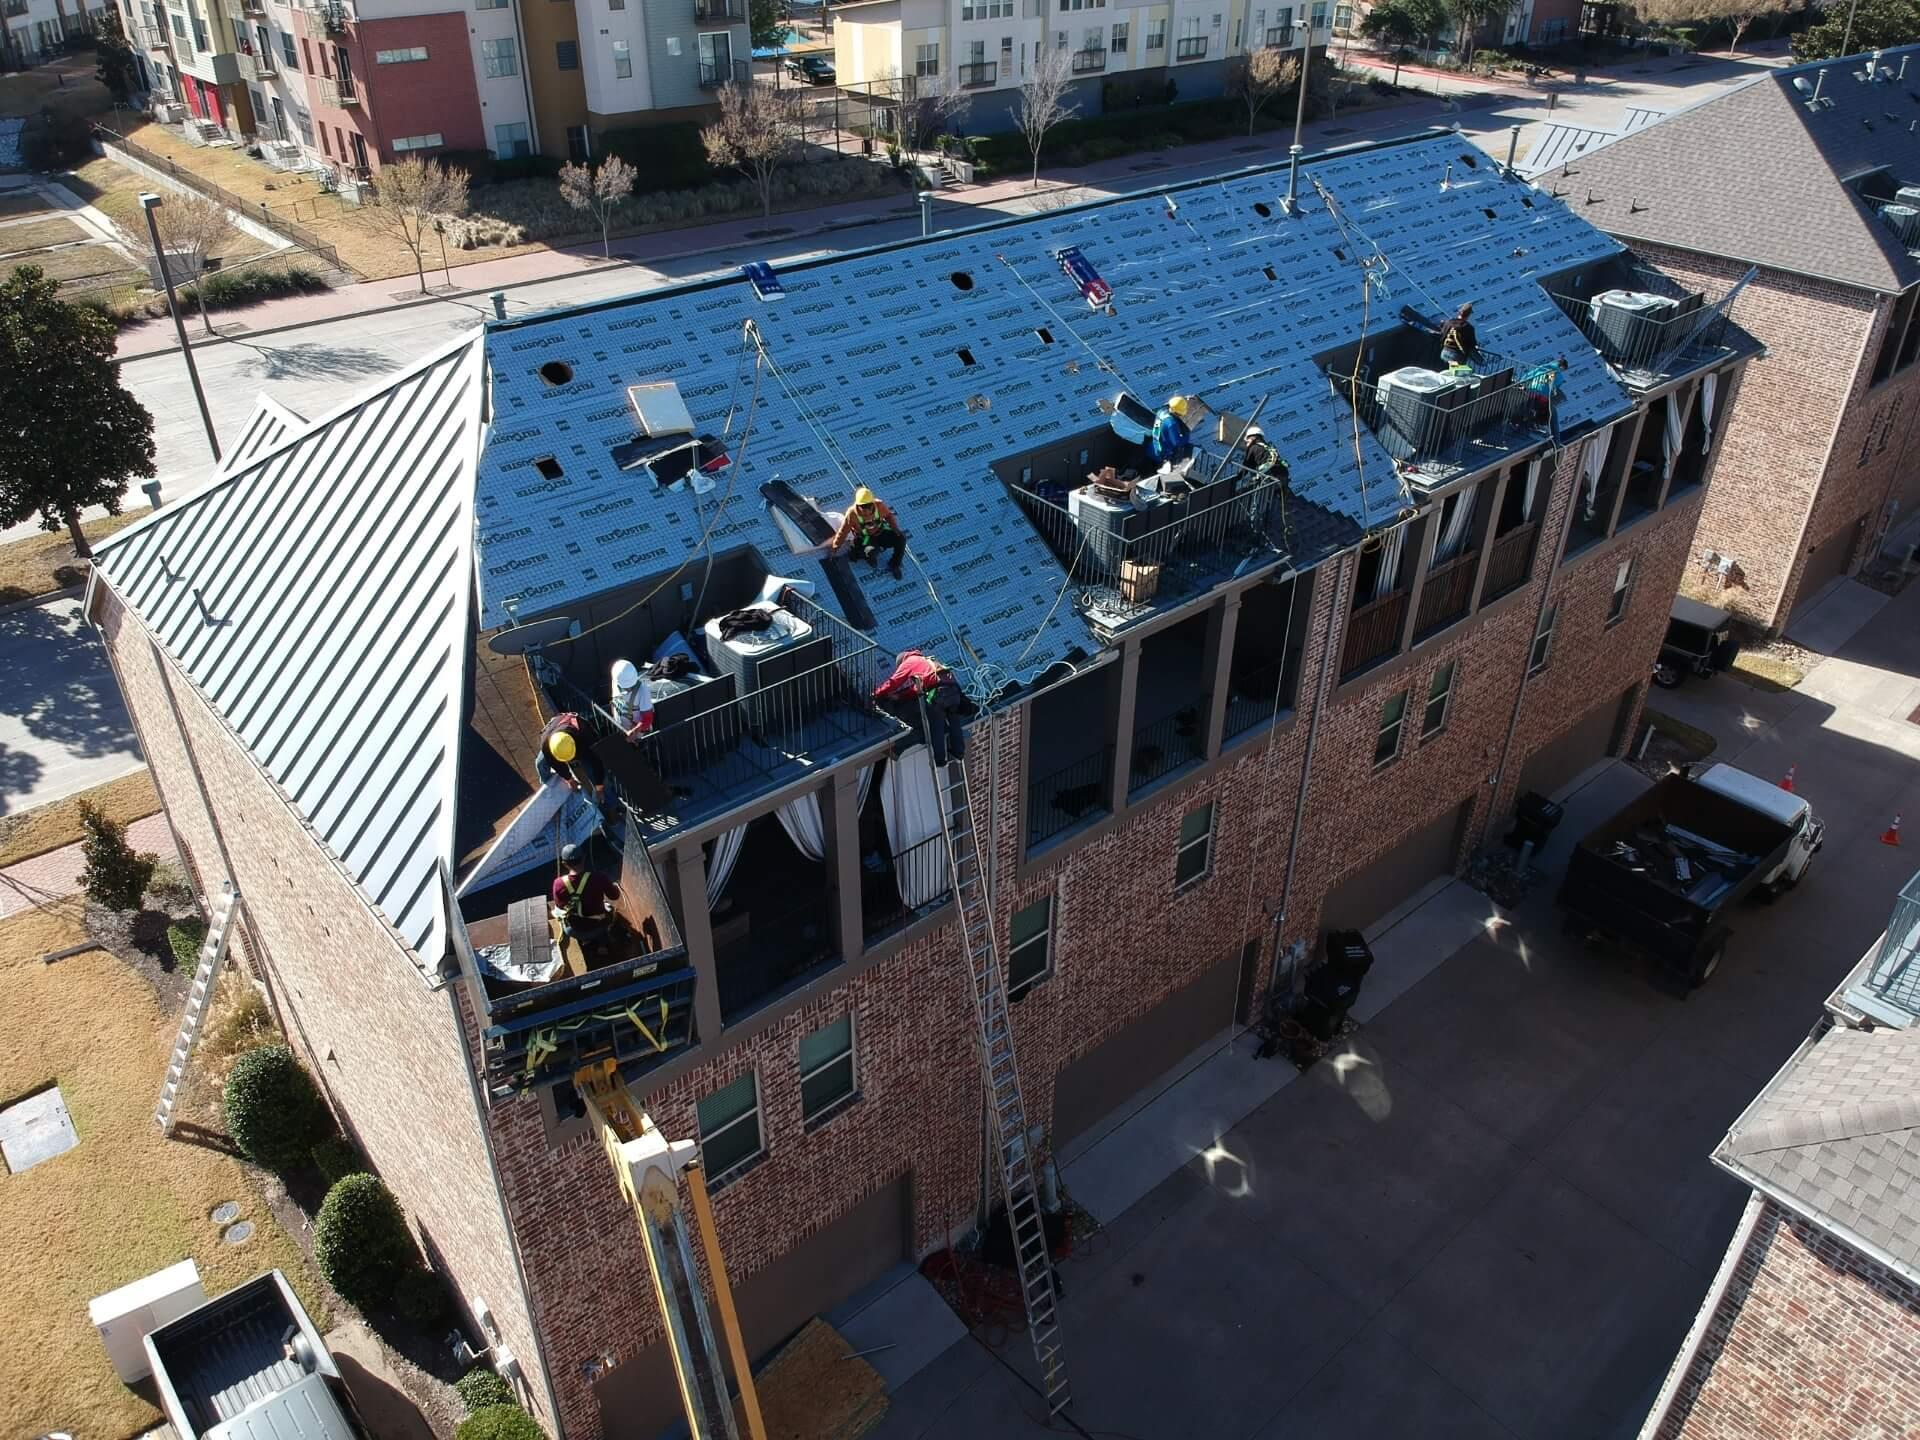 commercial roofer panama city fl tpo flat epdm roof repair free inspection best companies near me services panama city commercial roofing company image4